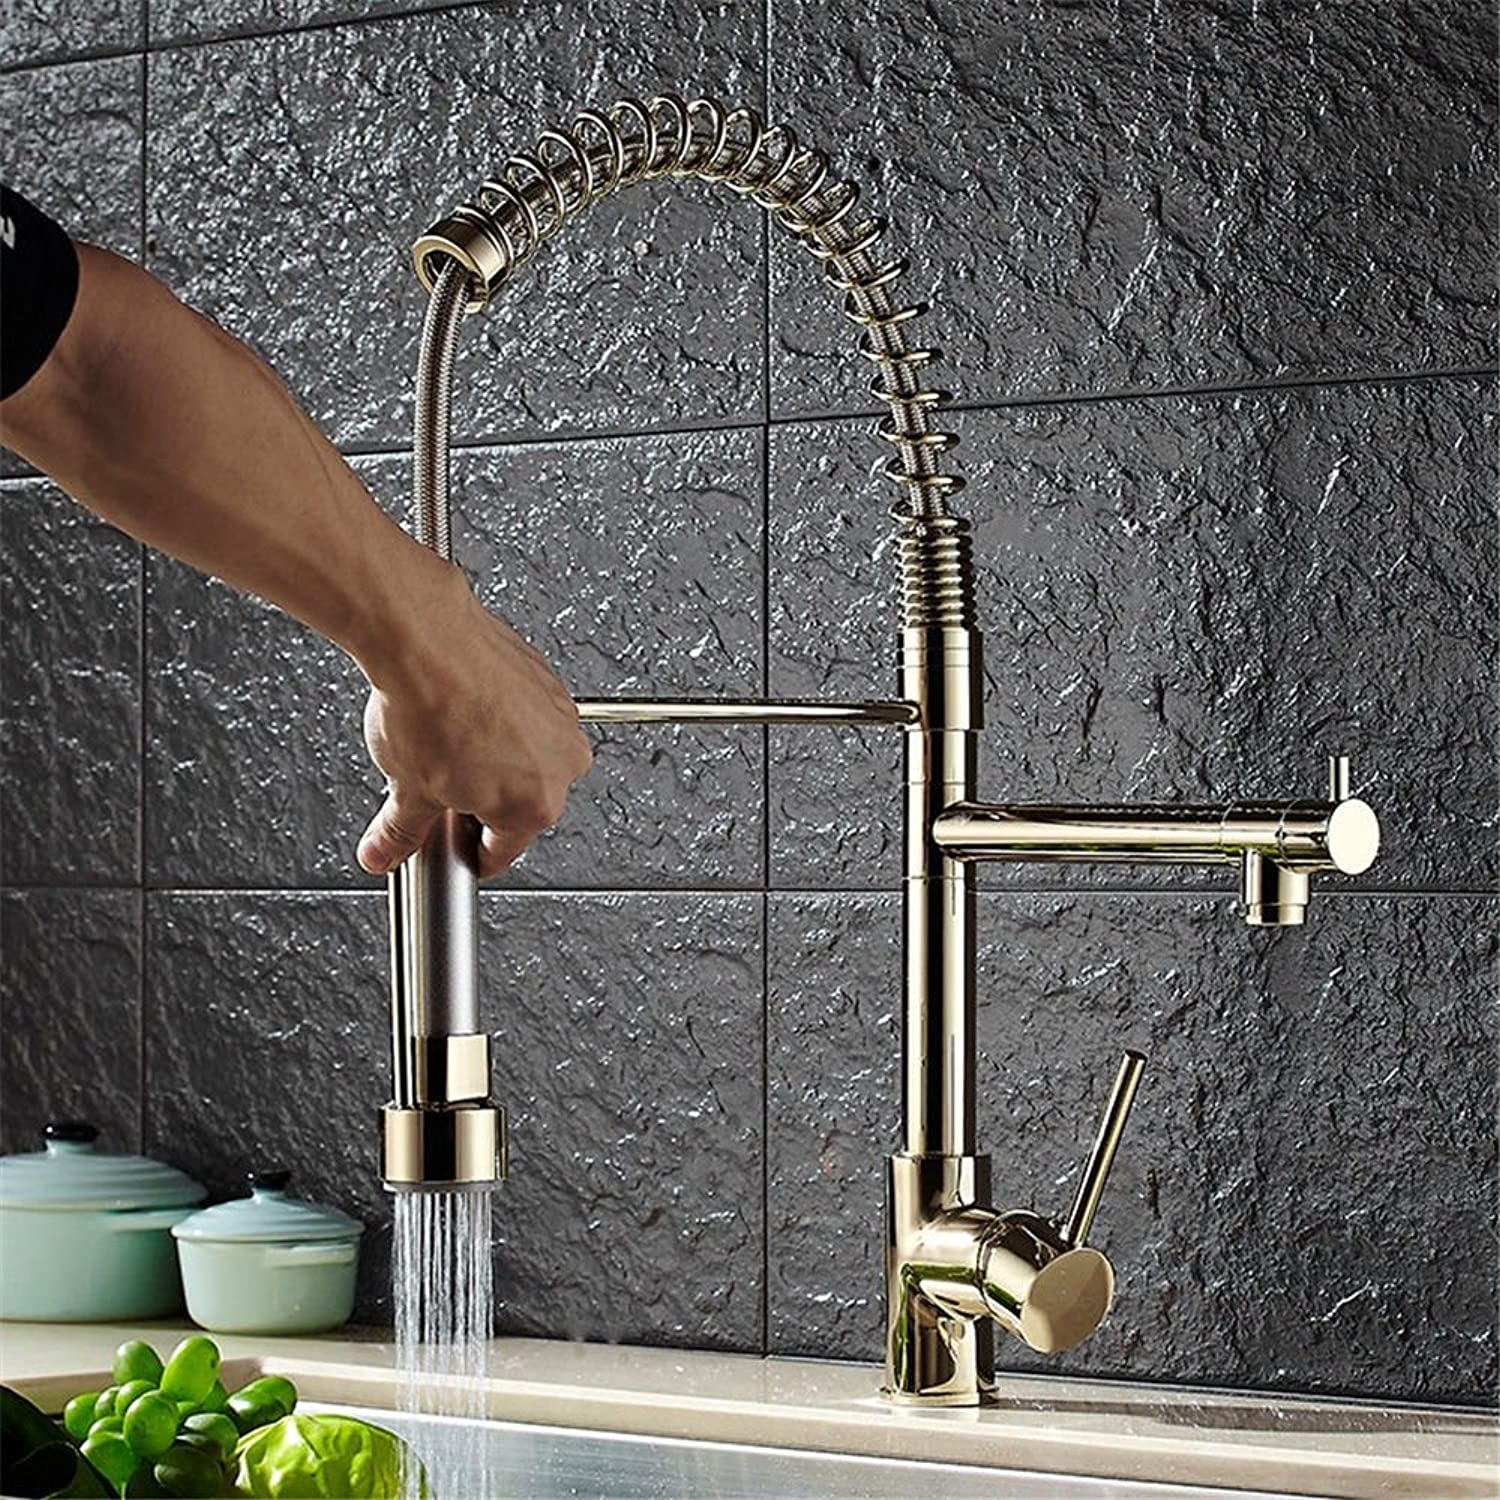 Lalaky Taps Faucet Kitchen Mixer Sink Waterfall Bathroom Mixer Basin Mixer Tap for Kitchen Bathroom and Washroom golden High Pressure Drawing Spring Hot and Cold Water Copper Double Outlet